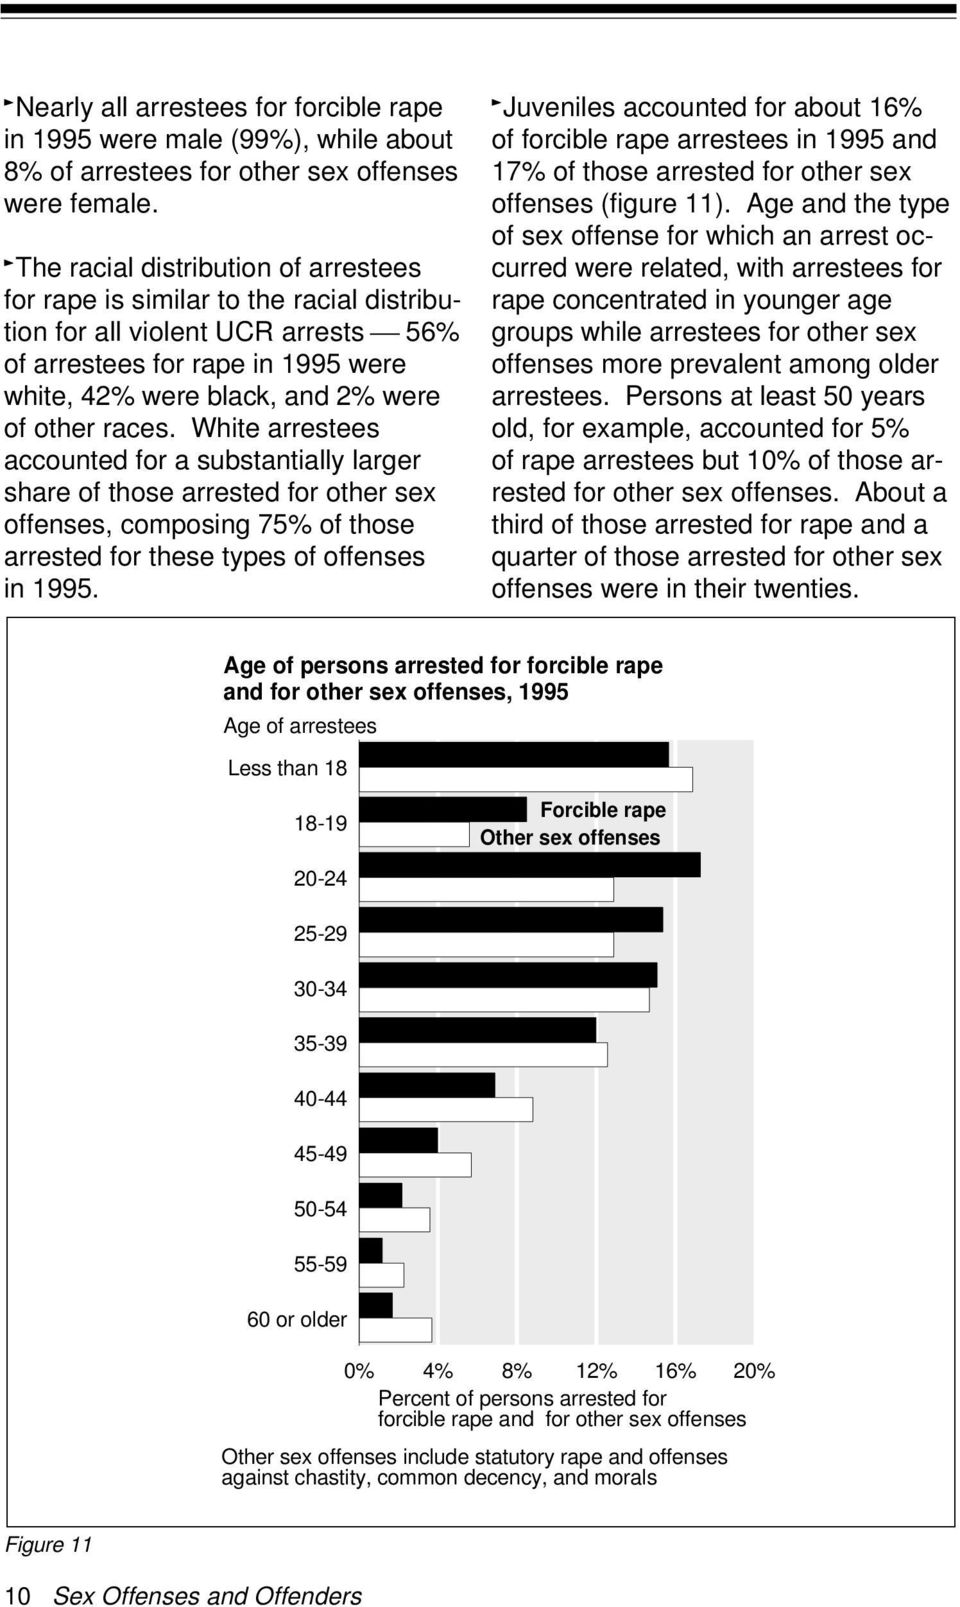 races. White arrestees accounted for a substantially larger share of those arrested for other sex offenses, composing 75% of those arrested for these types of offenses in 1995.